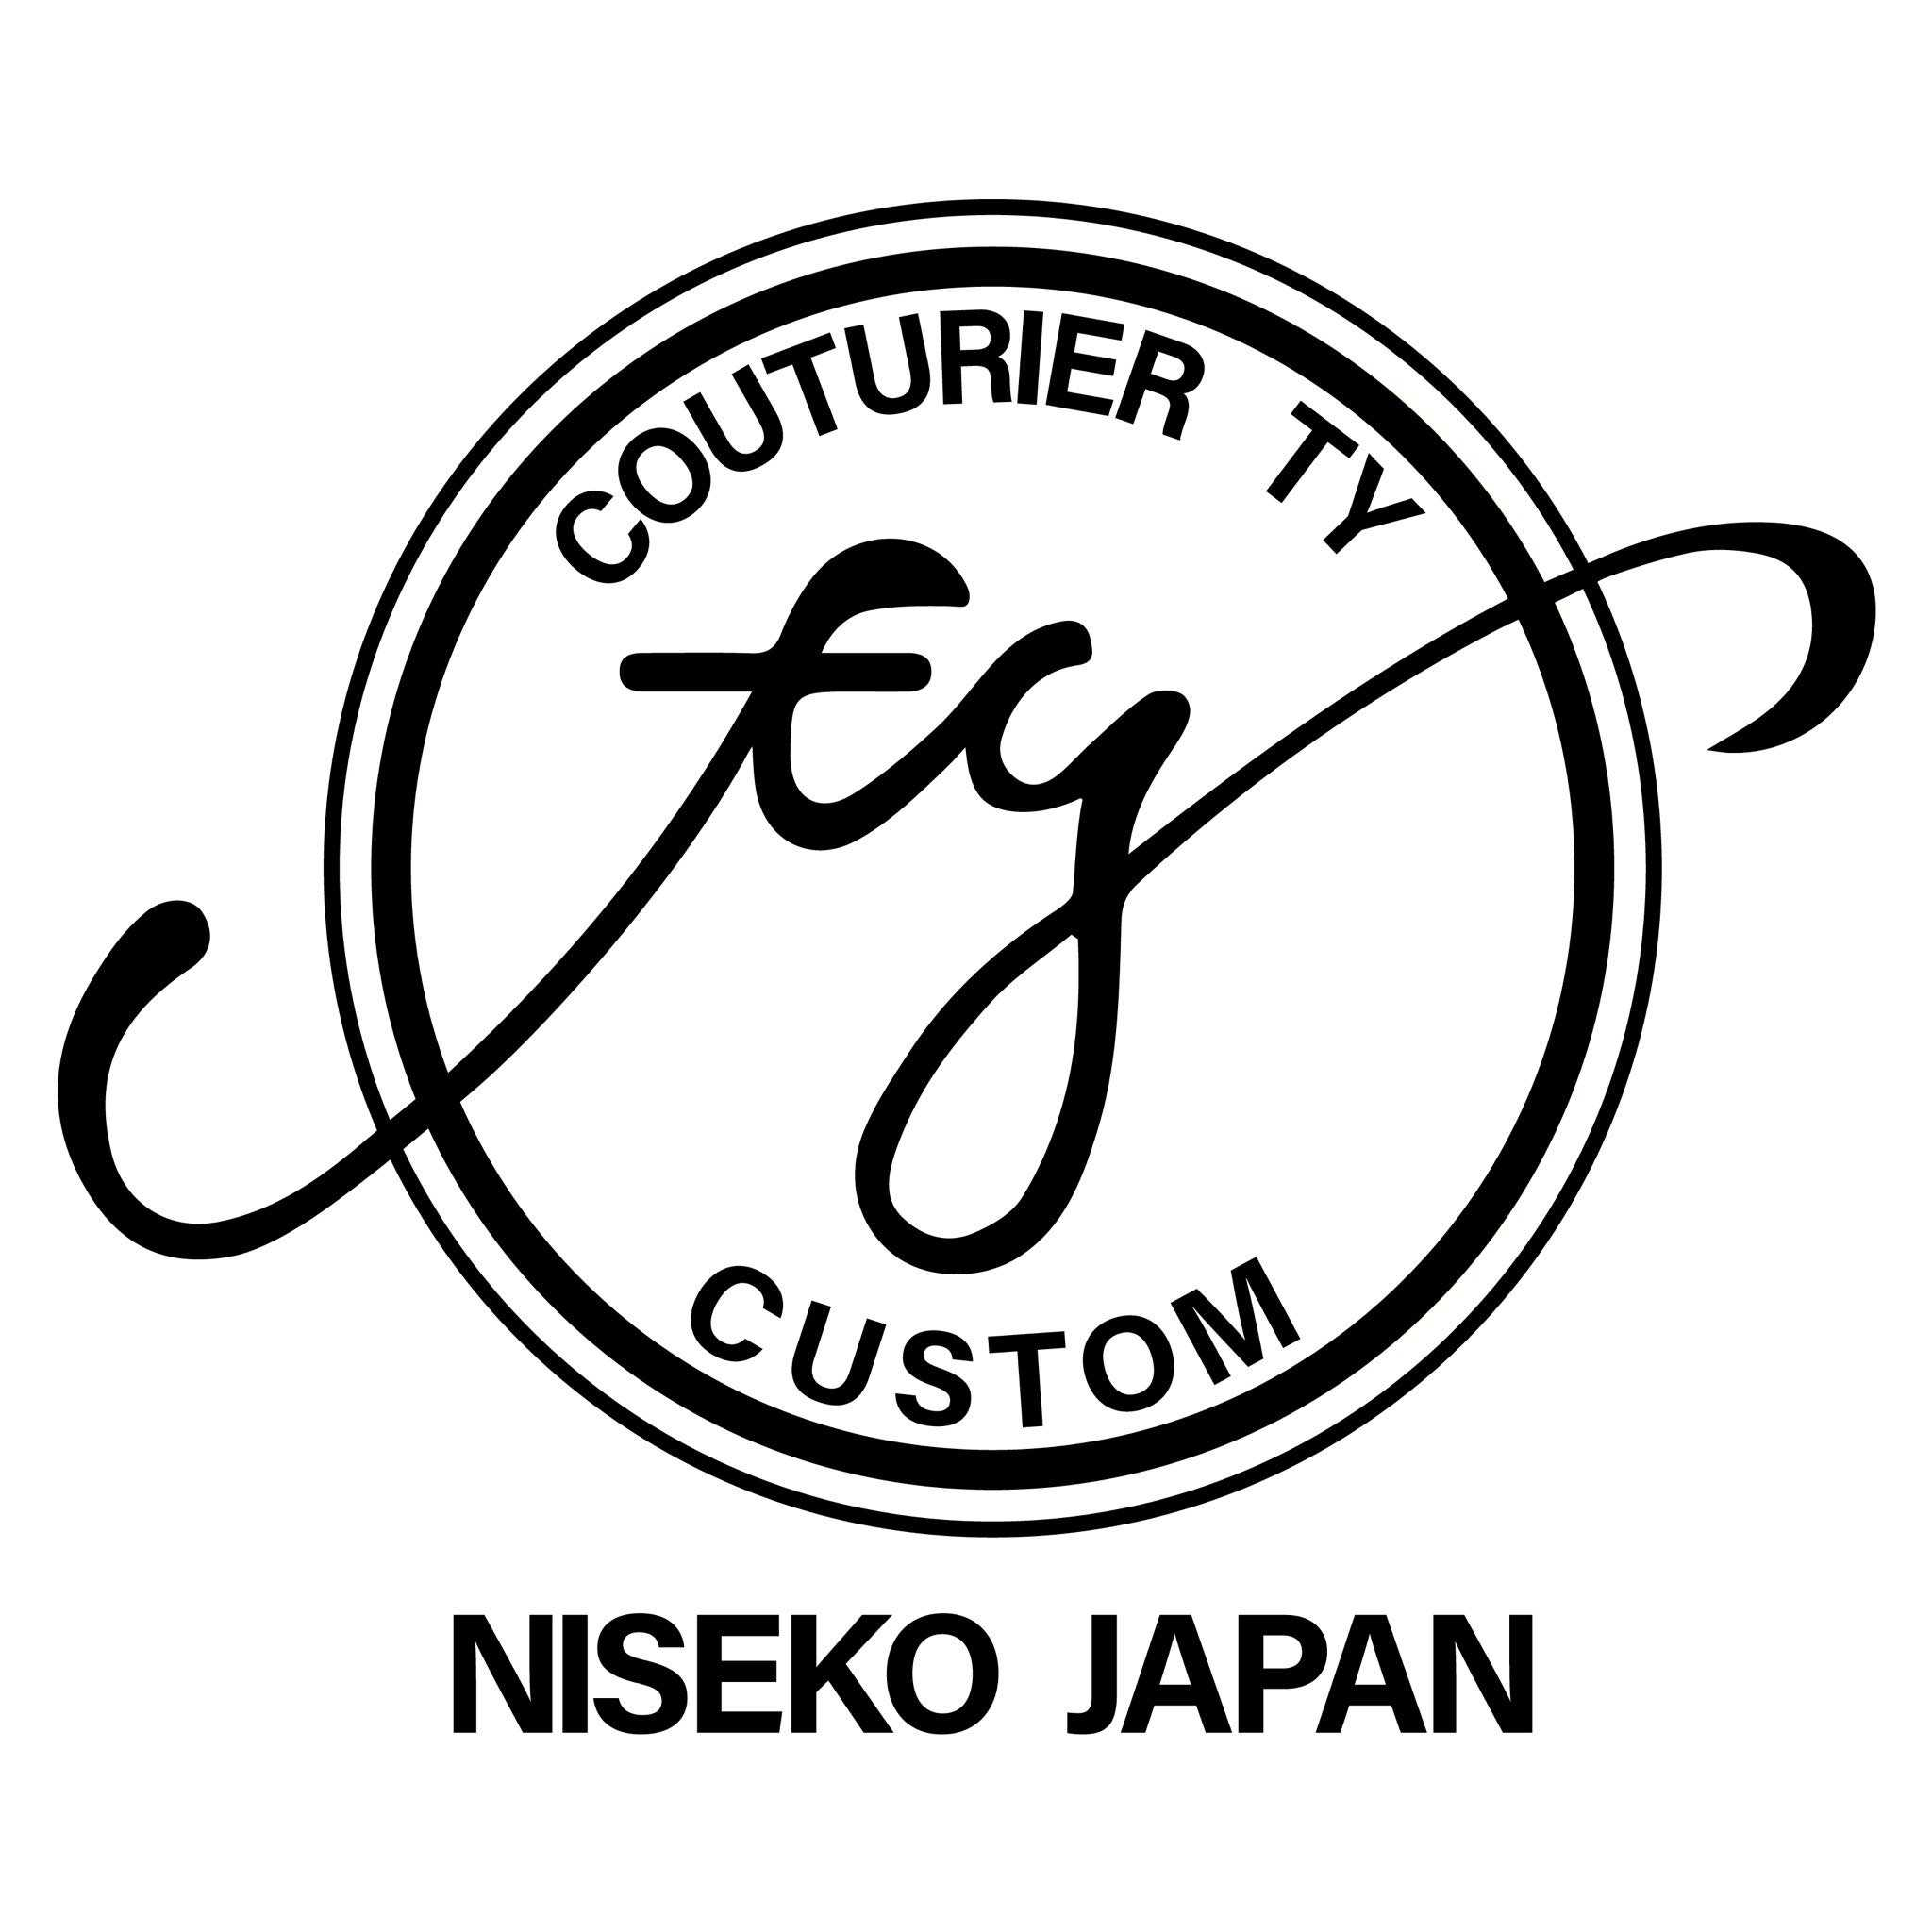 Couturierty logo